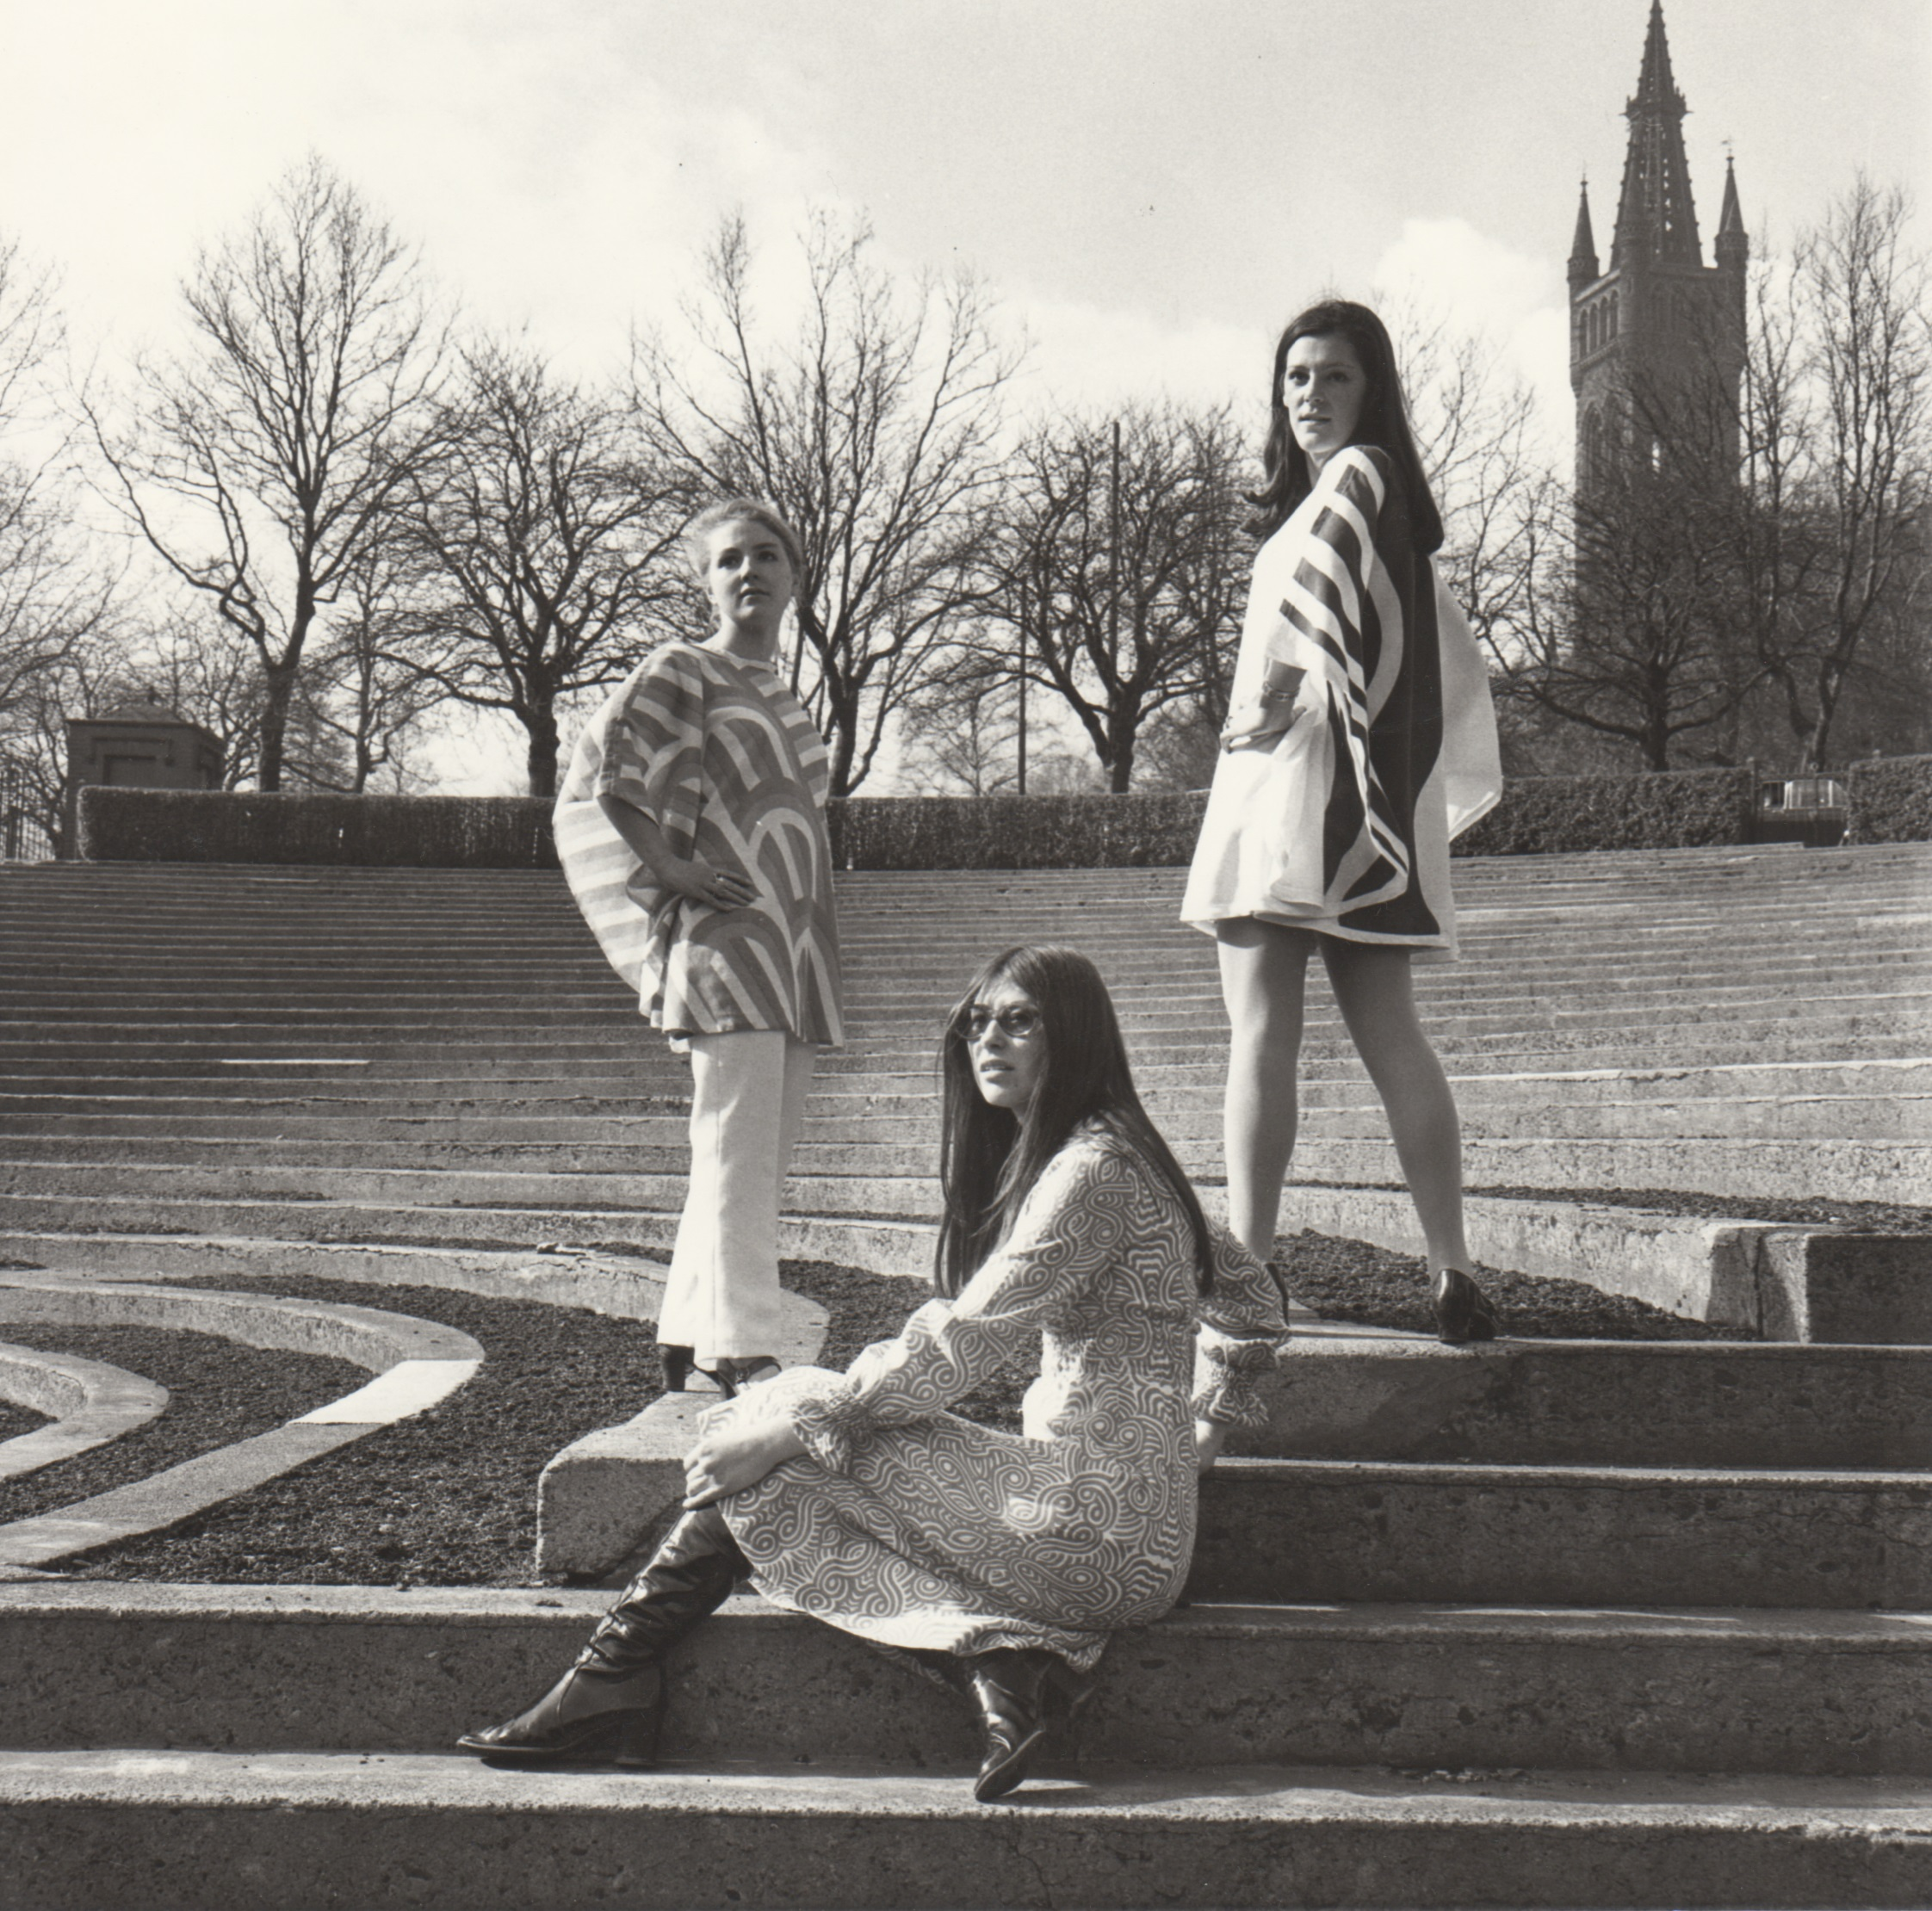 GSAA/P/1/2414 GSA students modelling fashion designs in Kelvingrove Park, 1960s